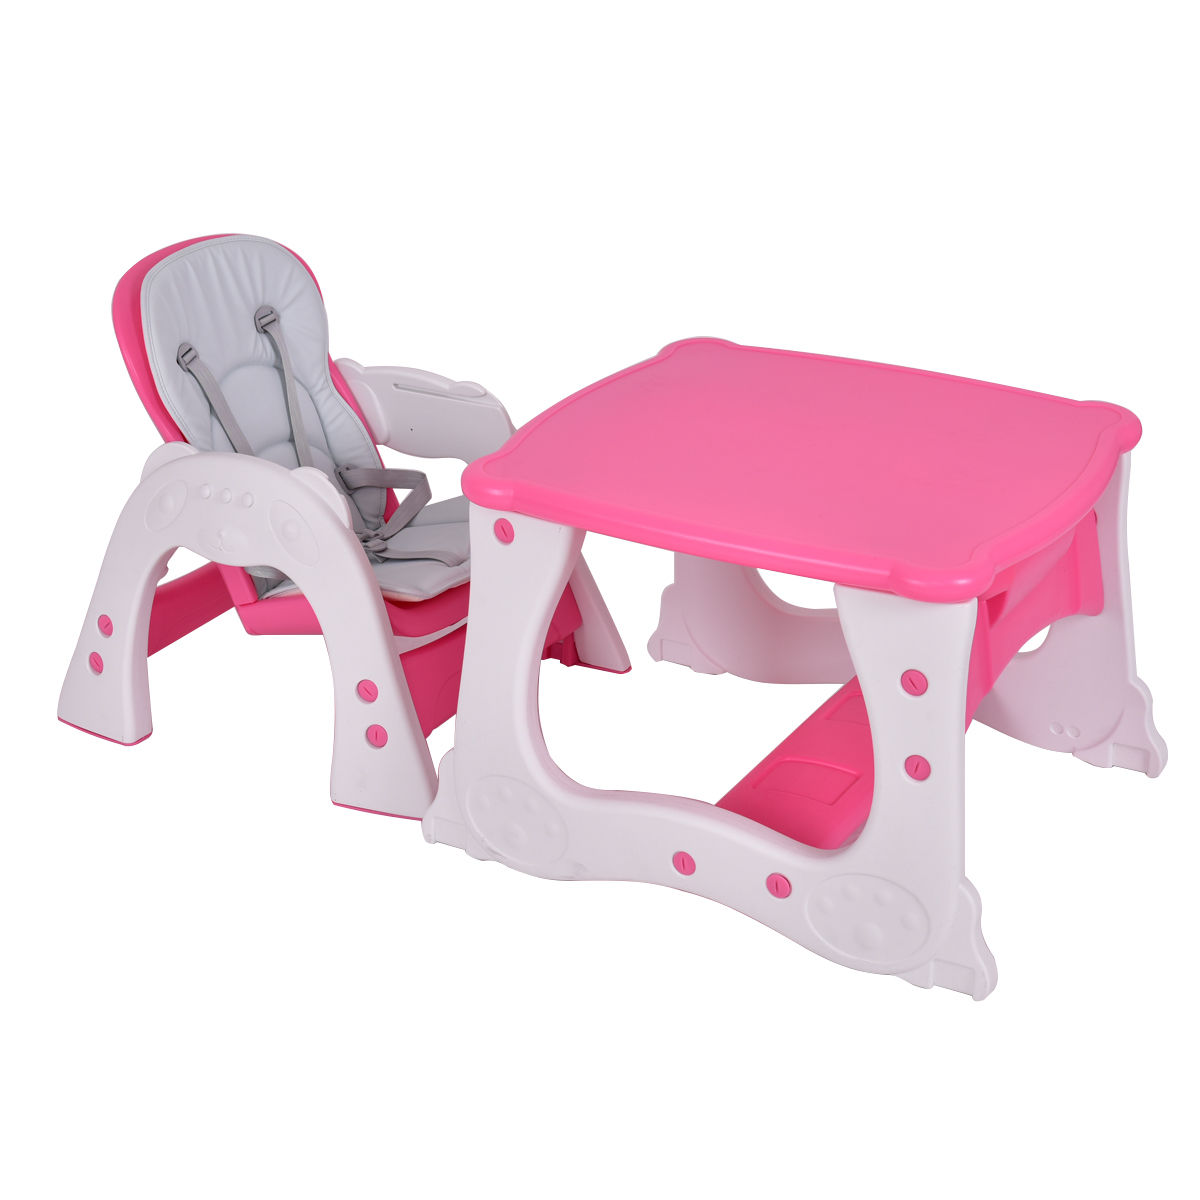 3 in 1 Baby High Chair Convertible Play Table Seat Booster Toddler Feeding Tray - image 9 de 10